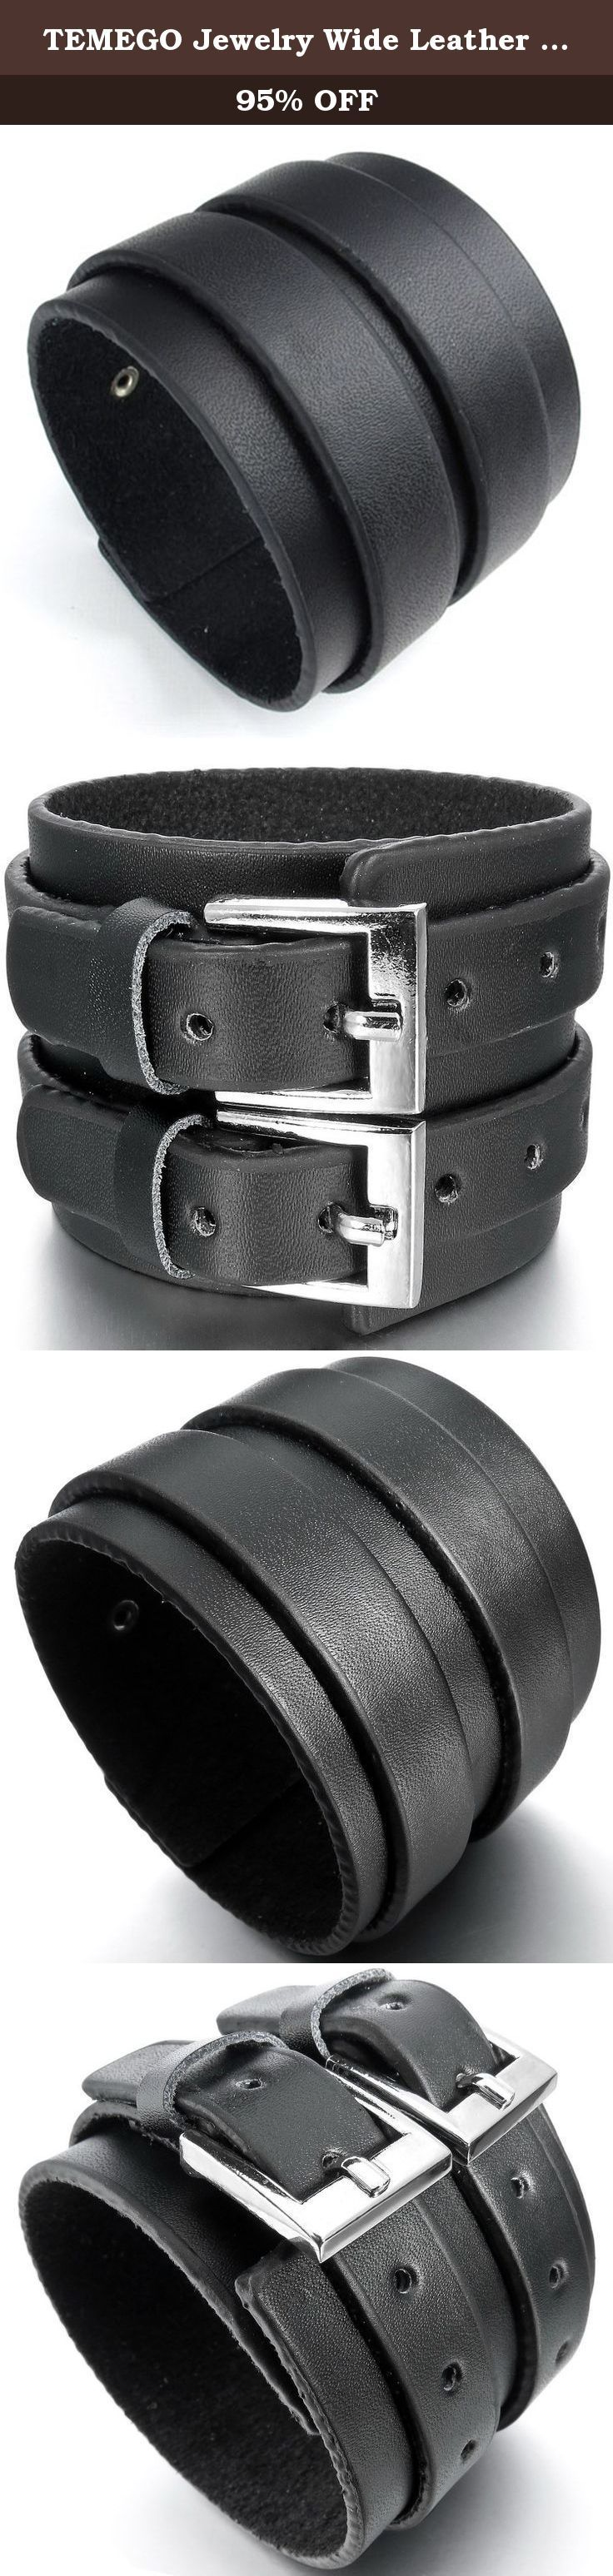 """TEMEGO Jewelry Wide Leather Bracelet, Punk Rock,Adjustable Fits 6.5""""-8.5"""", Black Silver. Stainless Steel Jeweley has gained increasing popularity in men's jewelry. It does not tarnish and oxidized, which can last longer than other types of jewelry. Stainless steel jewelry has an amazing property of anti-allergice since they are often made without nickel."""